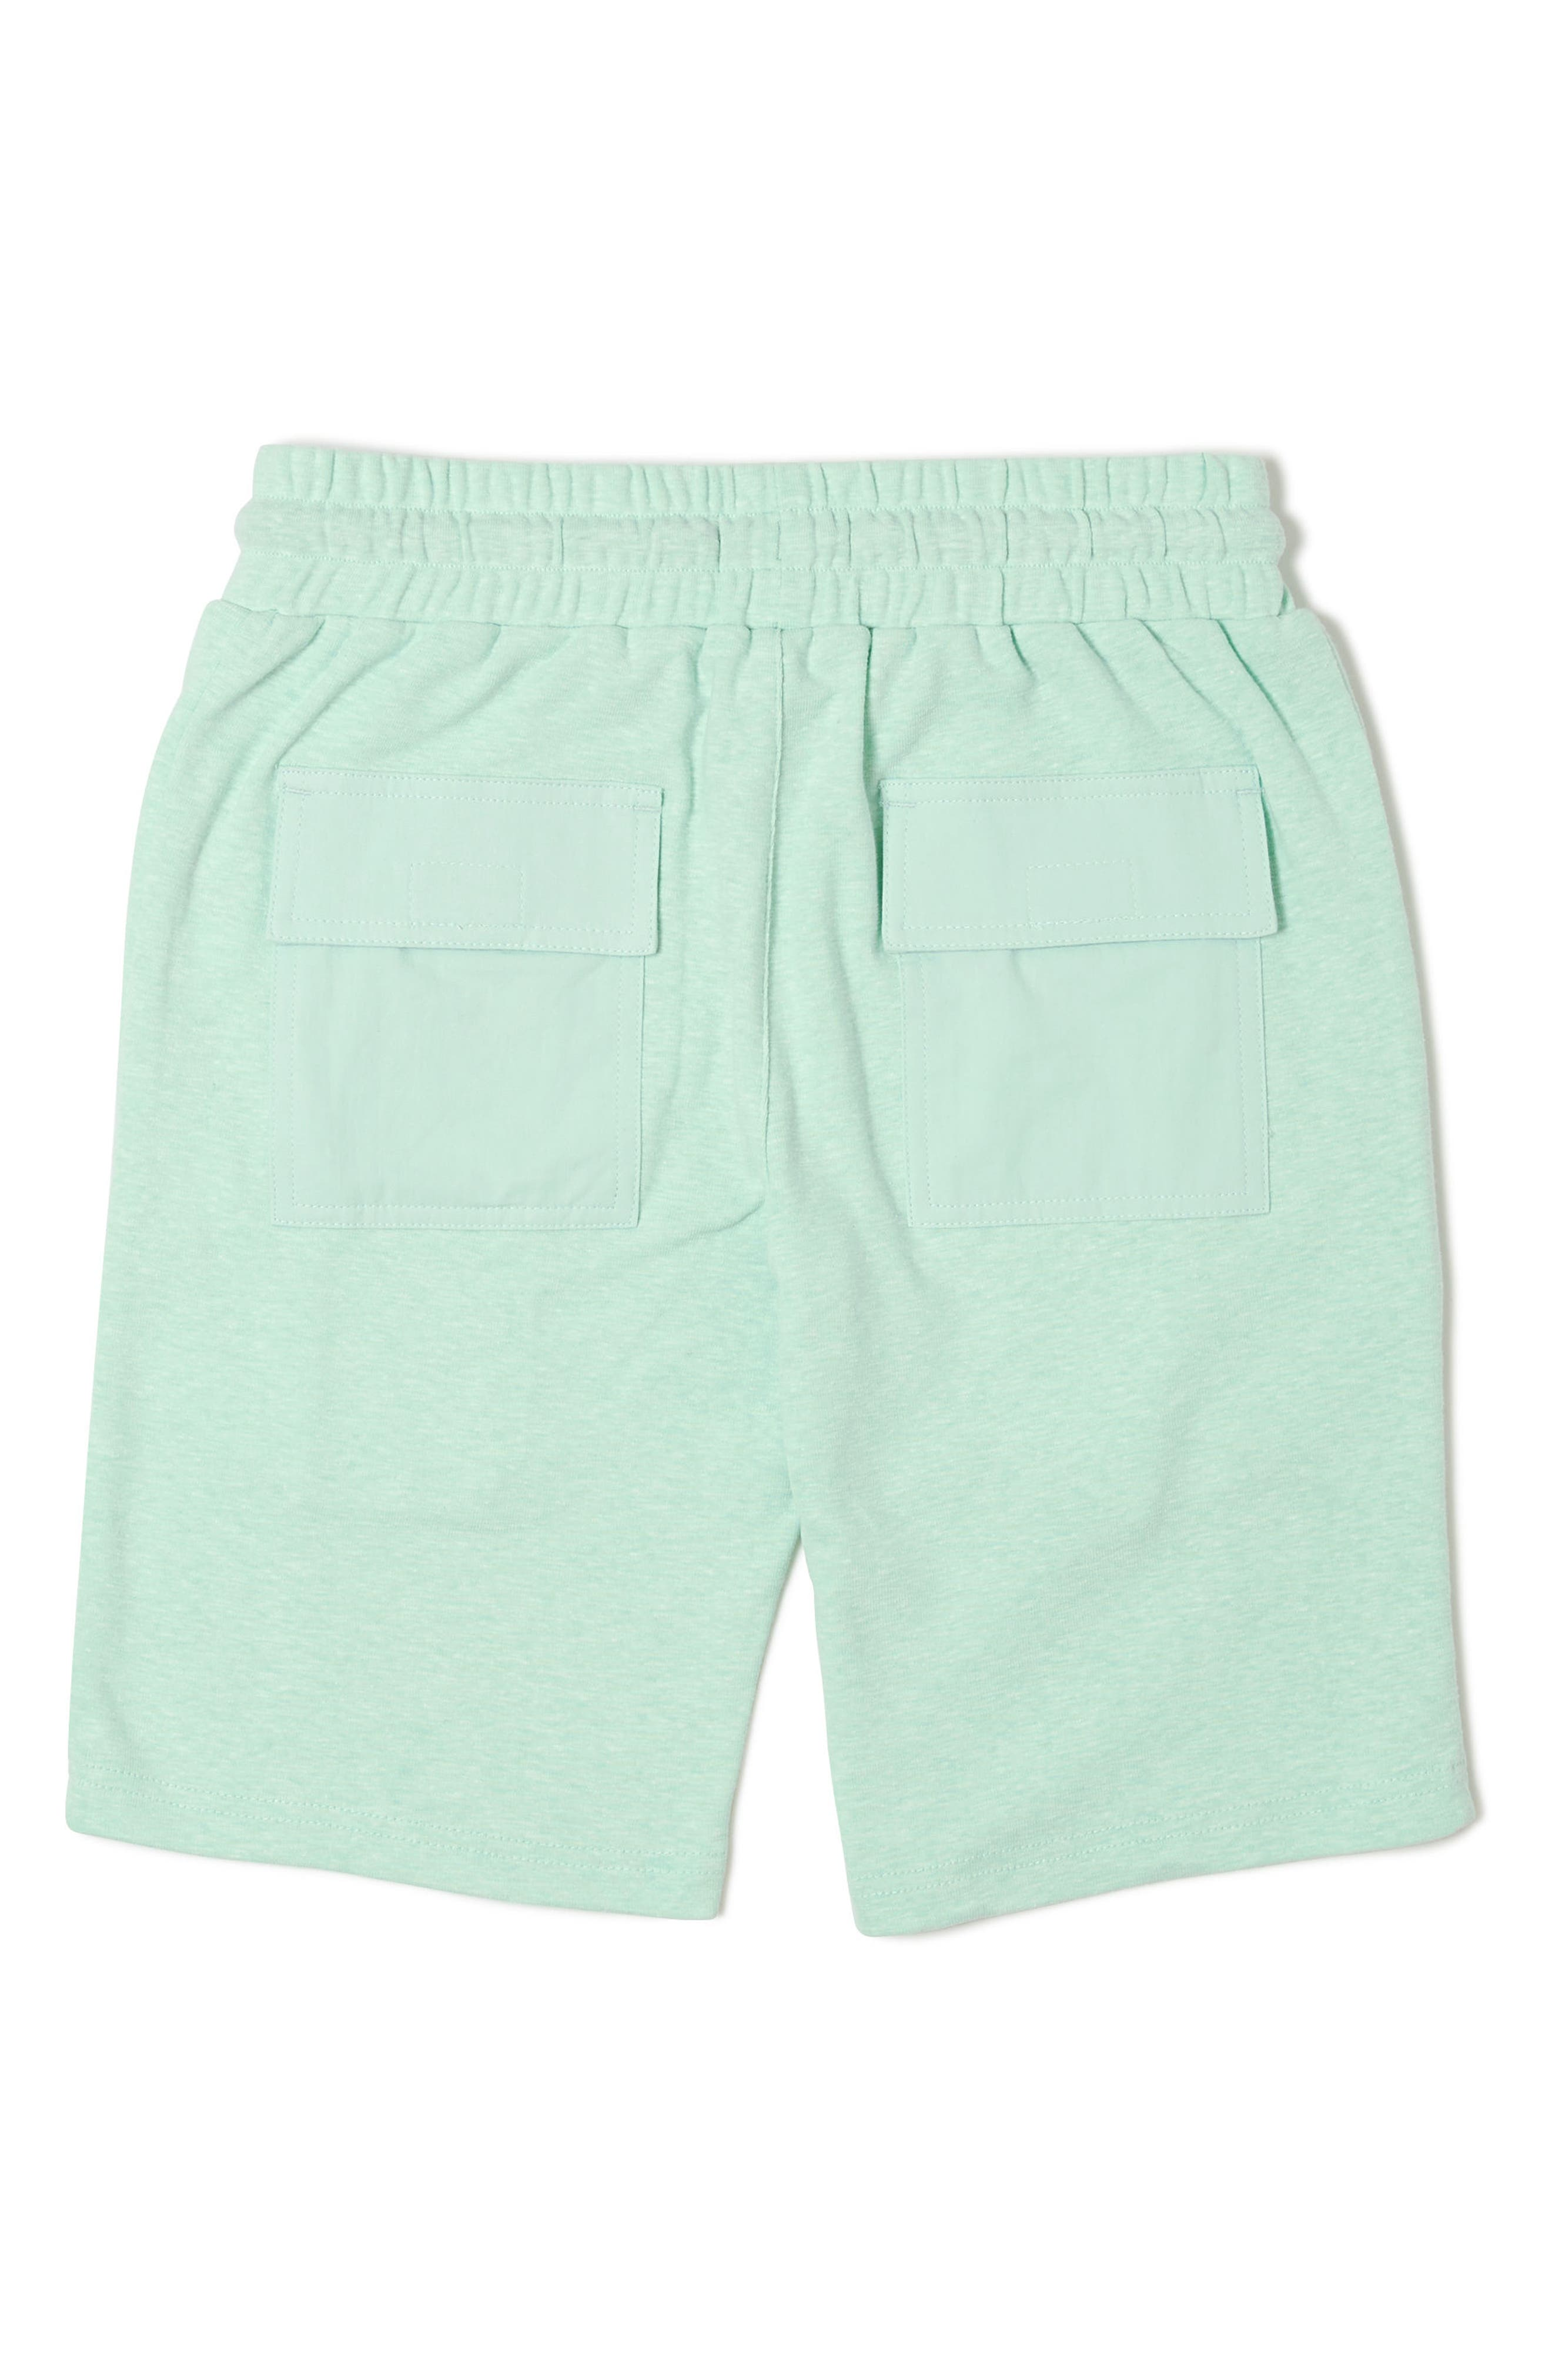 Ranger Knit Shorts,                             Alternate thumbnail 2, color,                             Green